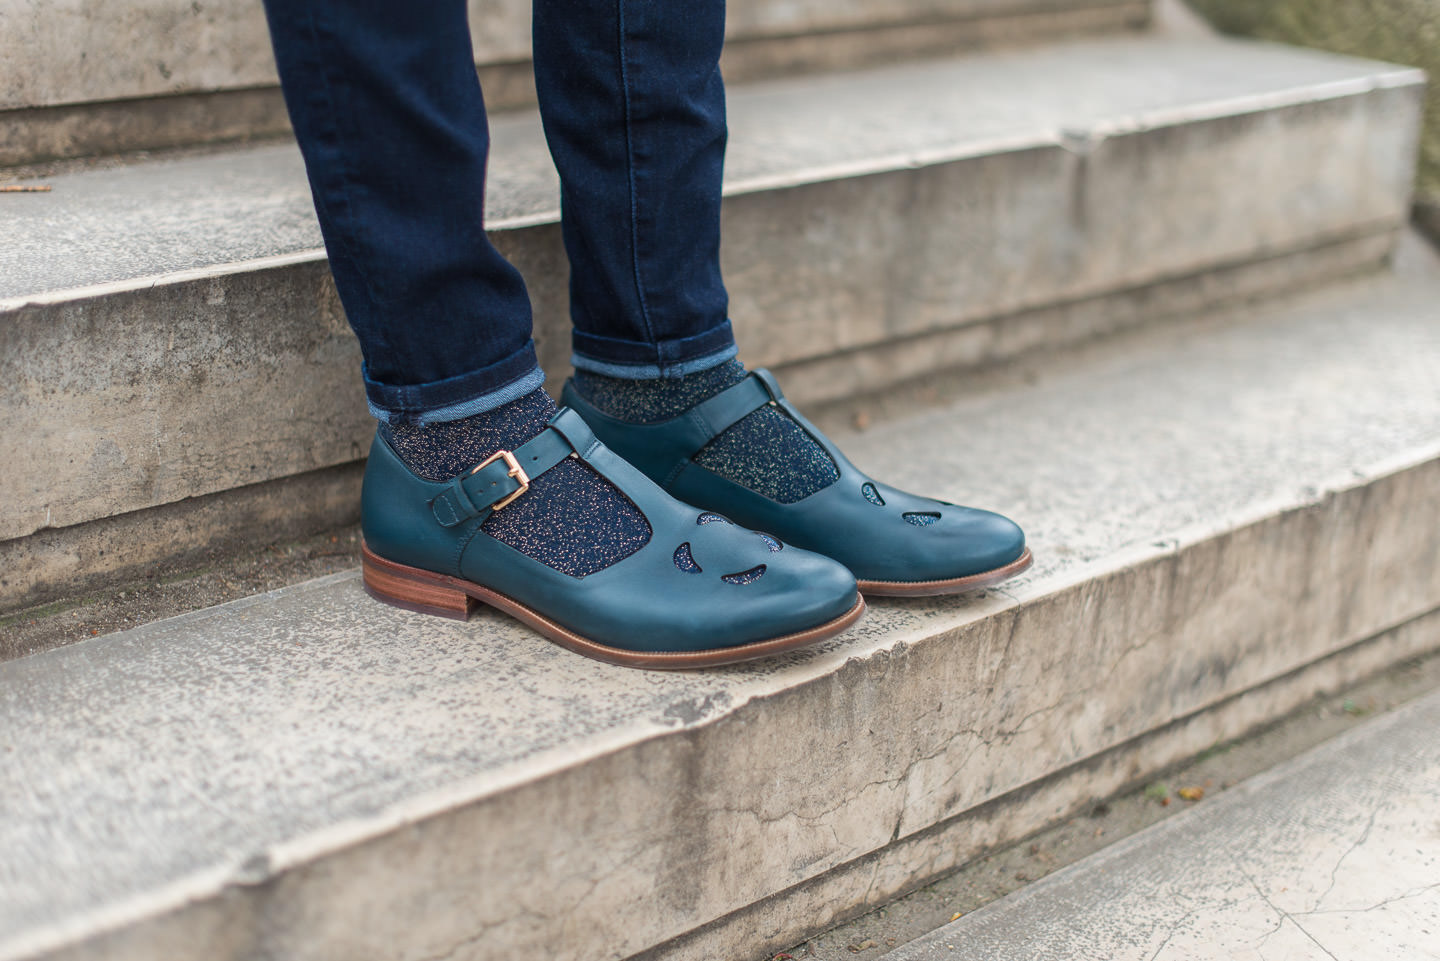 Blog-mode-Mode-And-The-City-looks-collaboration-clarks-orla-kiely-2-10